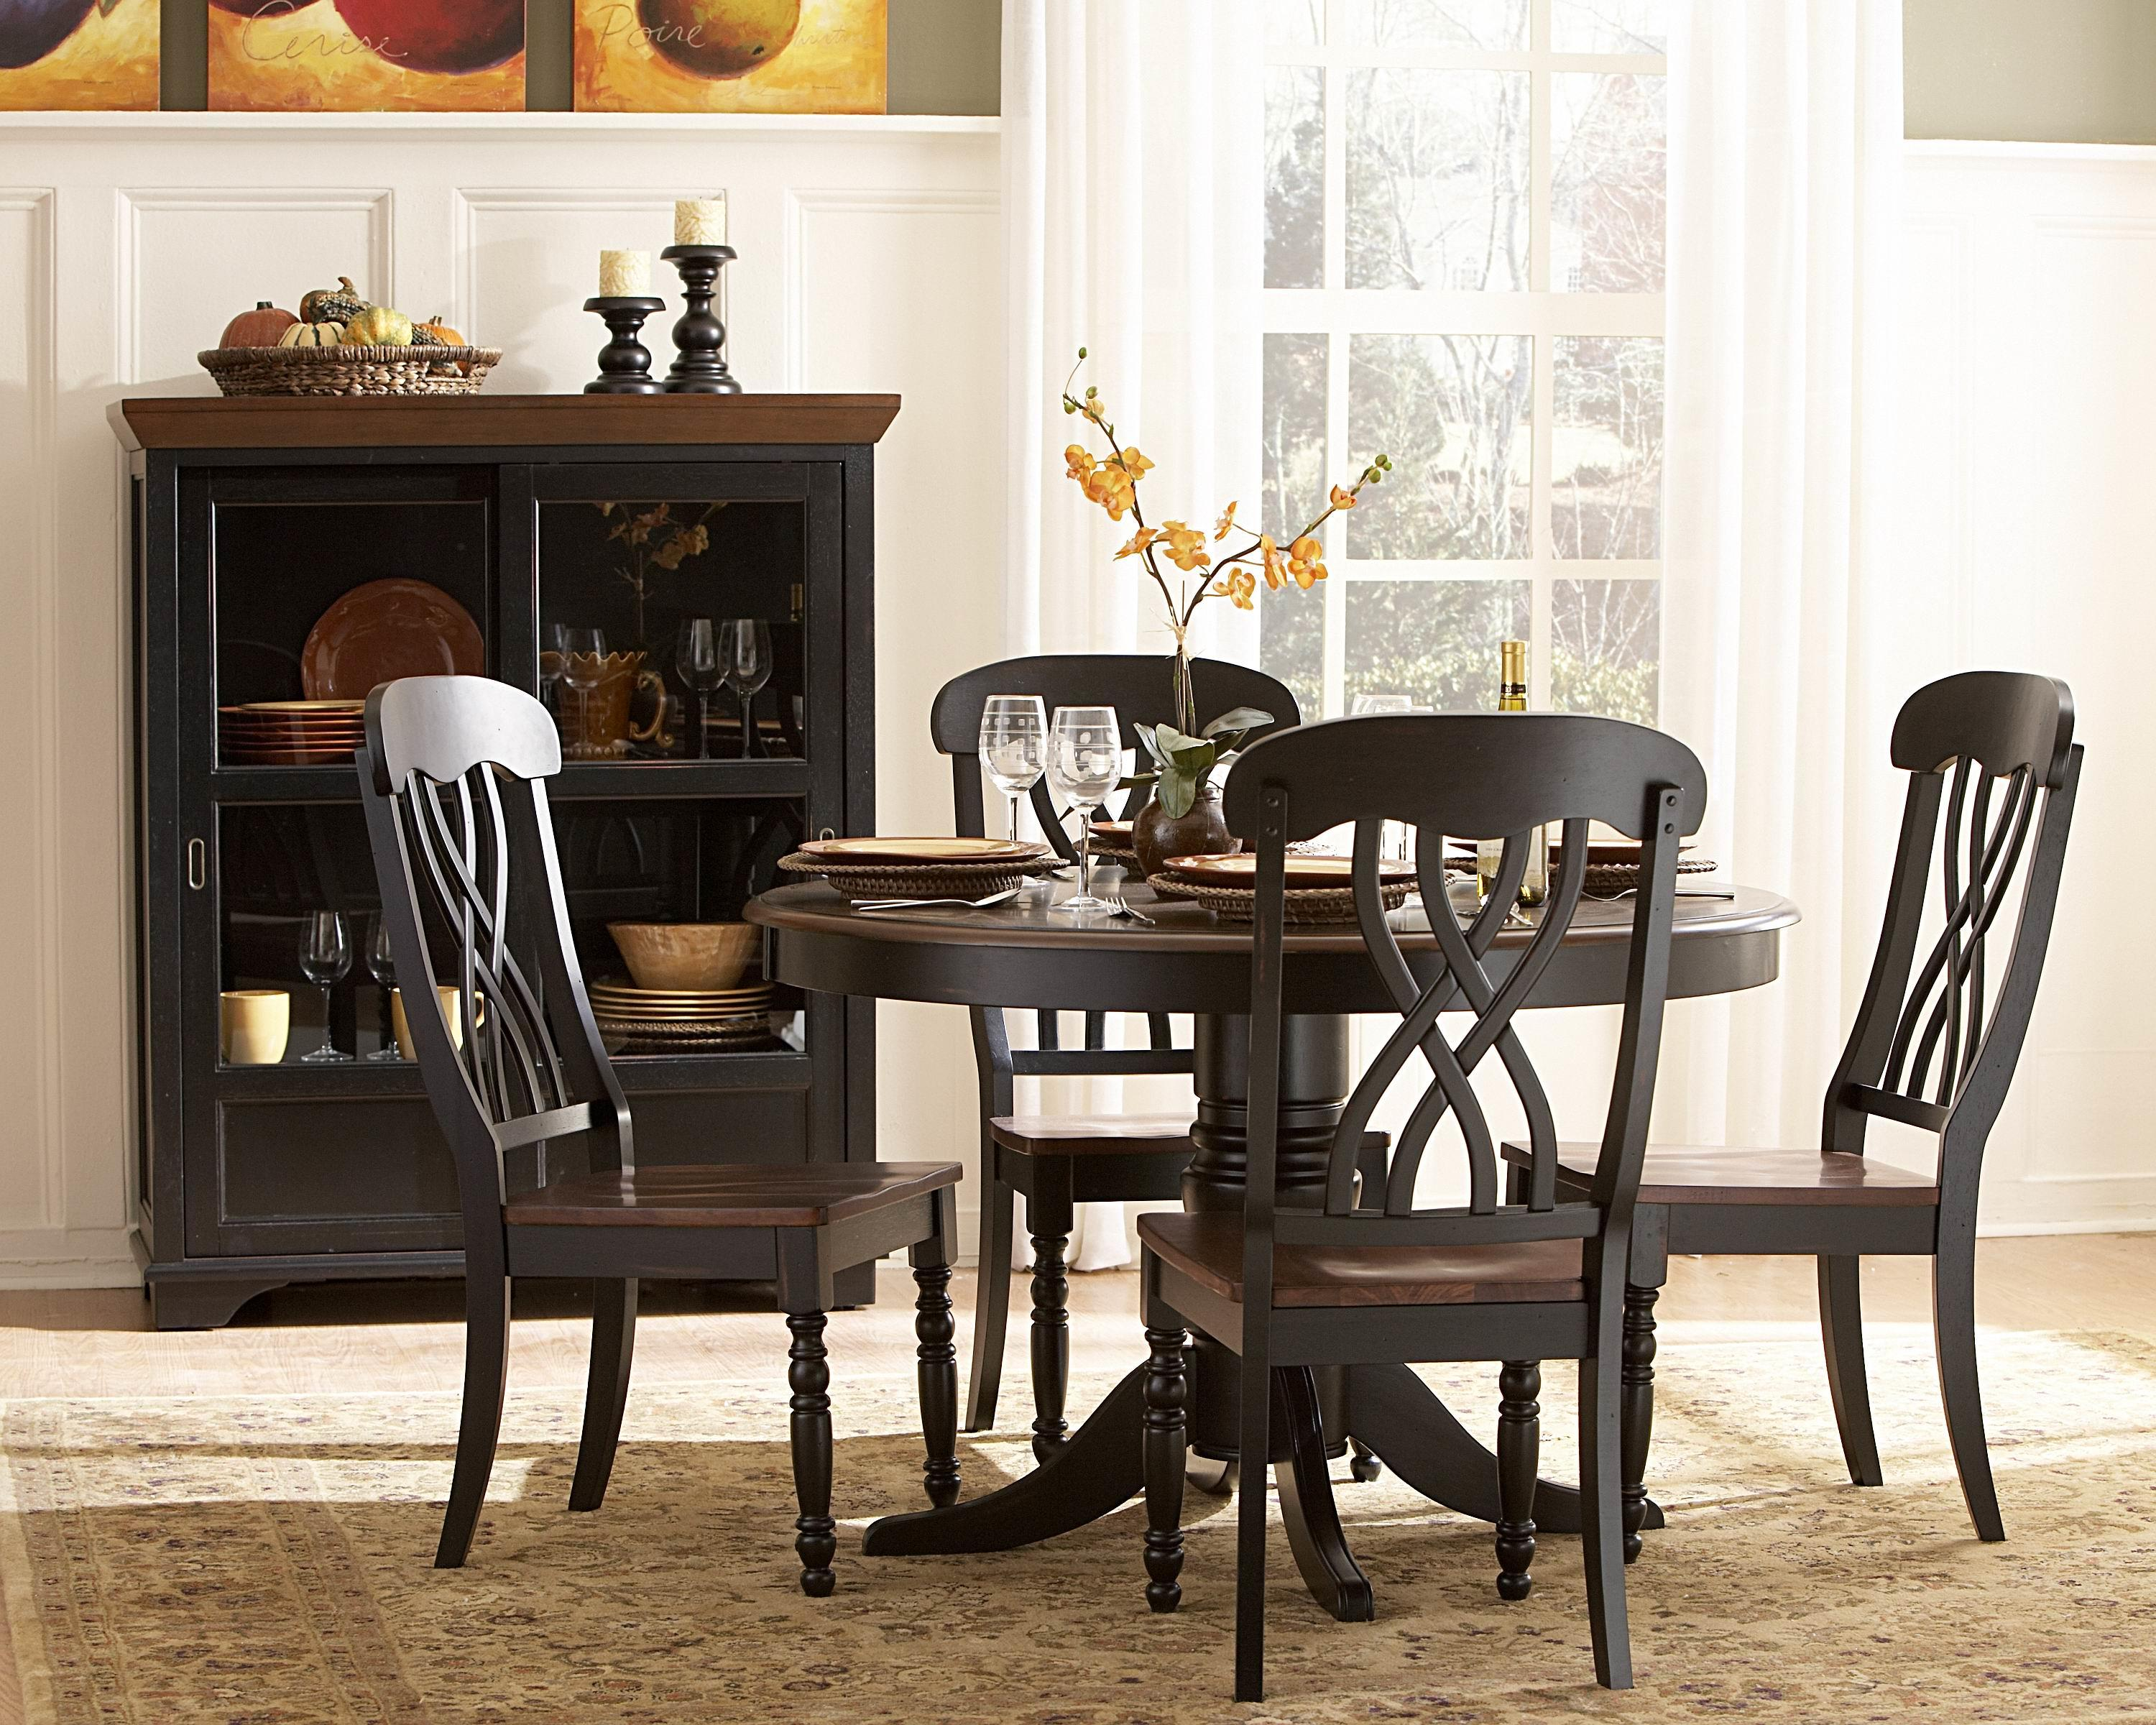 Kitchen Table Sets 4 Chairs Chairs Youll Love – Round Kitchen Table with 4 Chairs